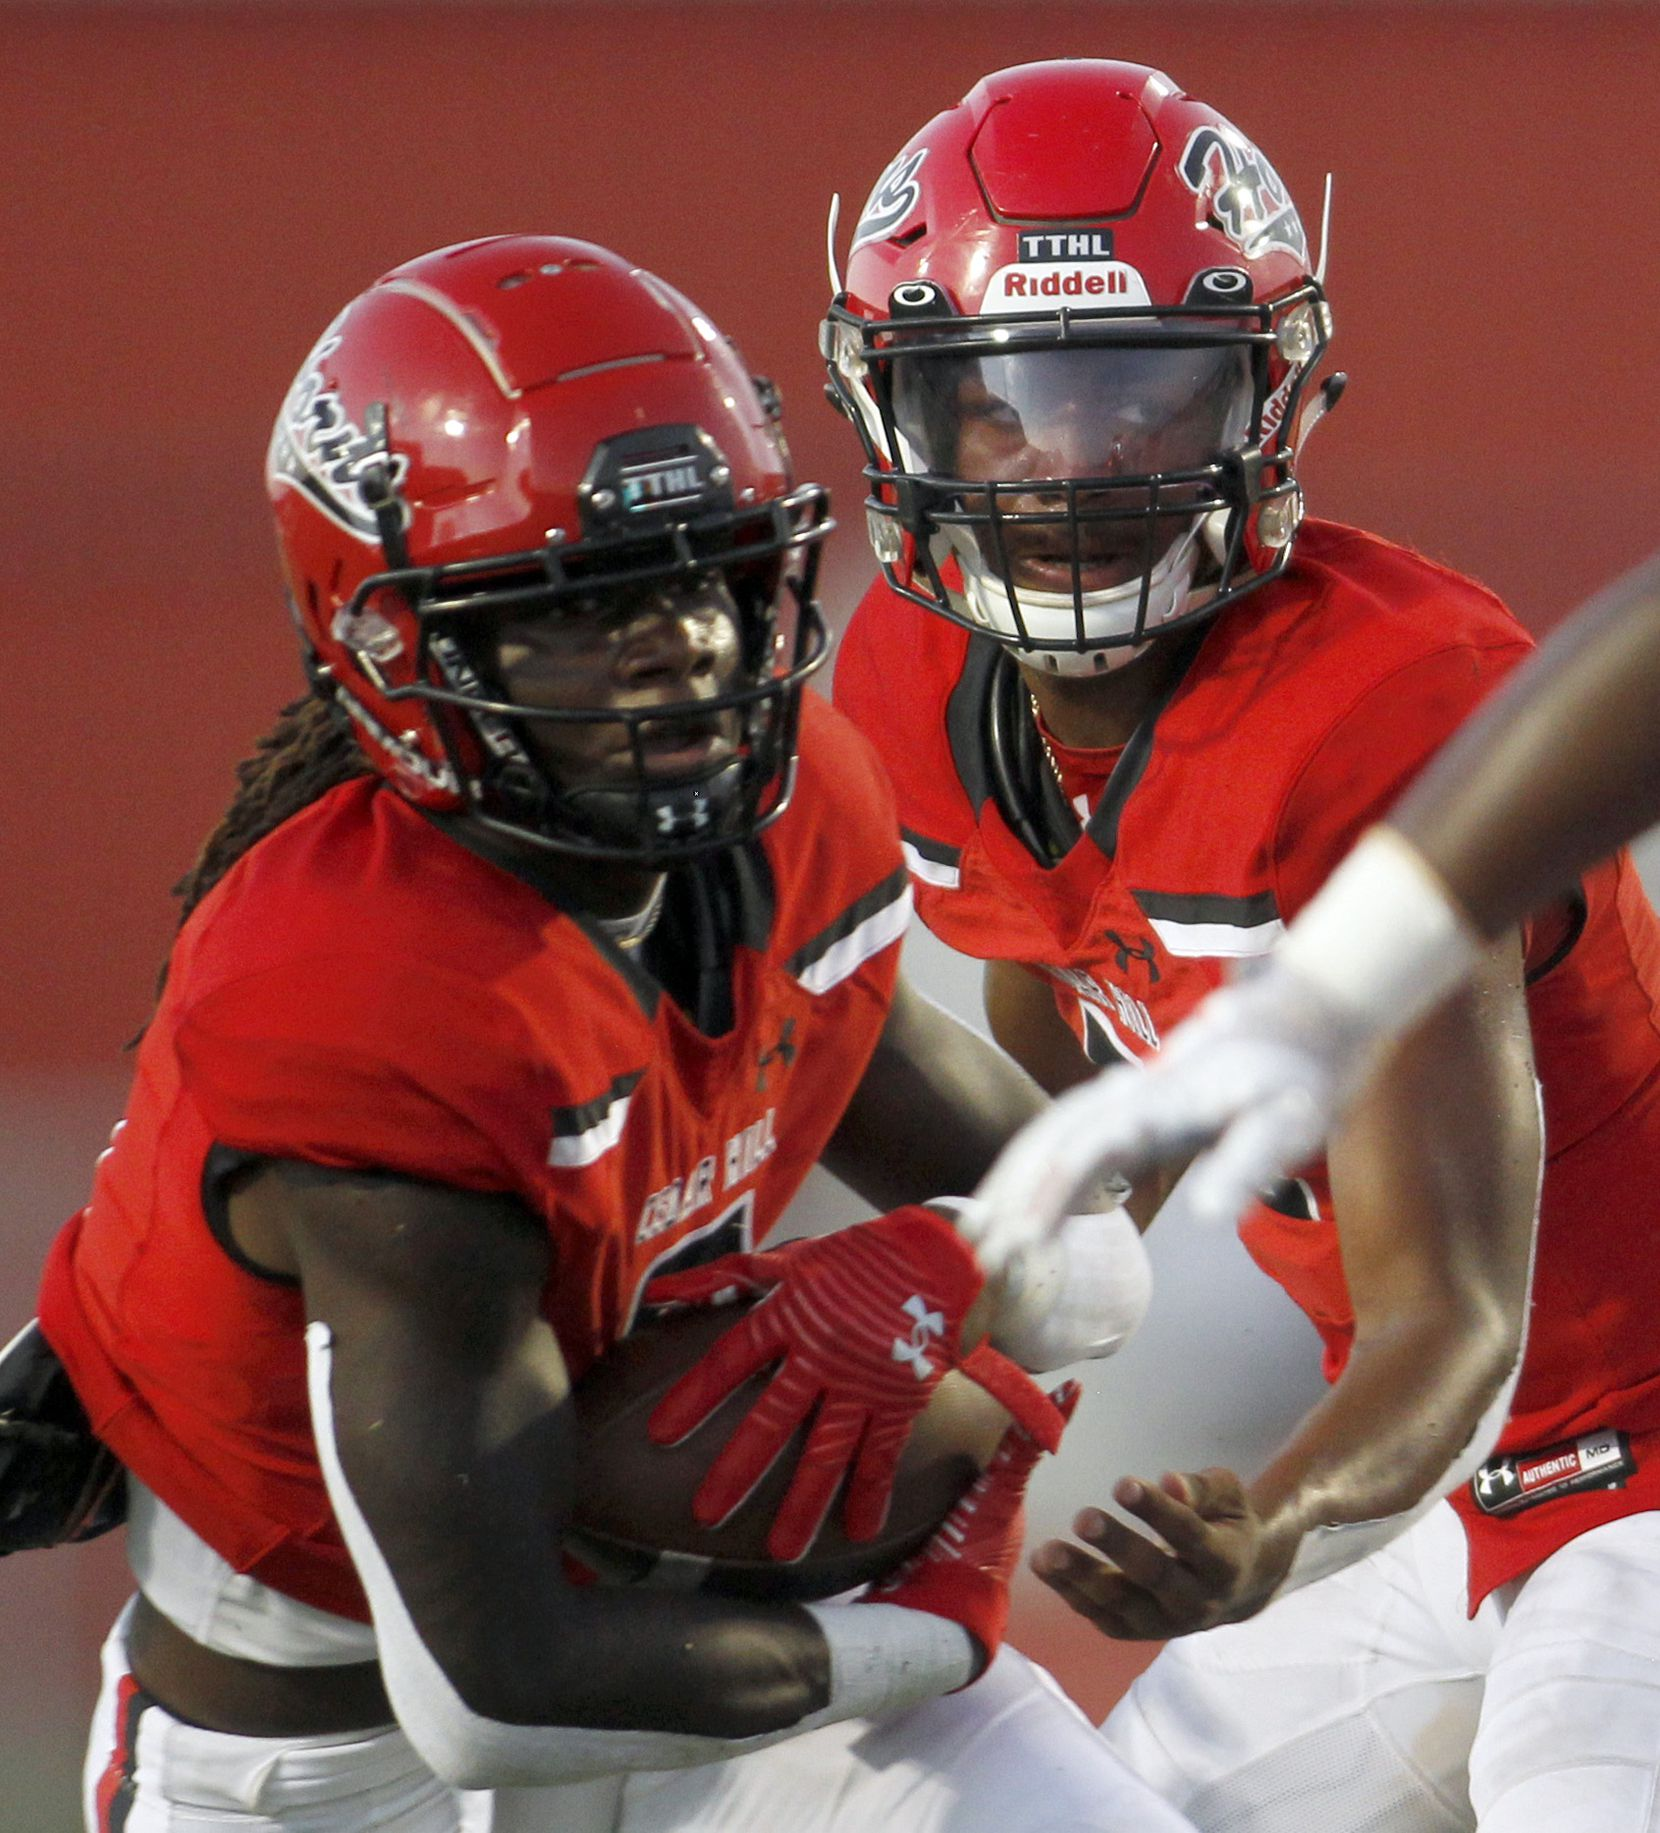 Cedar Hill quarterback Cedric Harden (5), right, hands off to running back Robert Richardson (6) during a first half rush in their game against Rockwall. The two teams played  their season opening football game at Longhorn Stadium in Cedar Hill on August 27, 2021. (Steve Hamm/ Special Contributor)